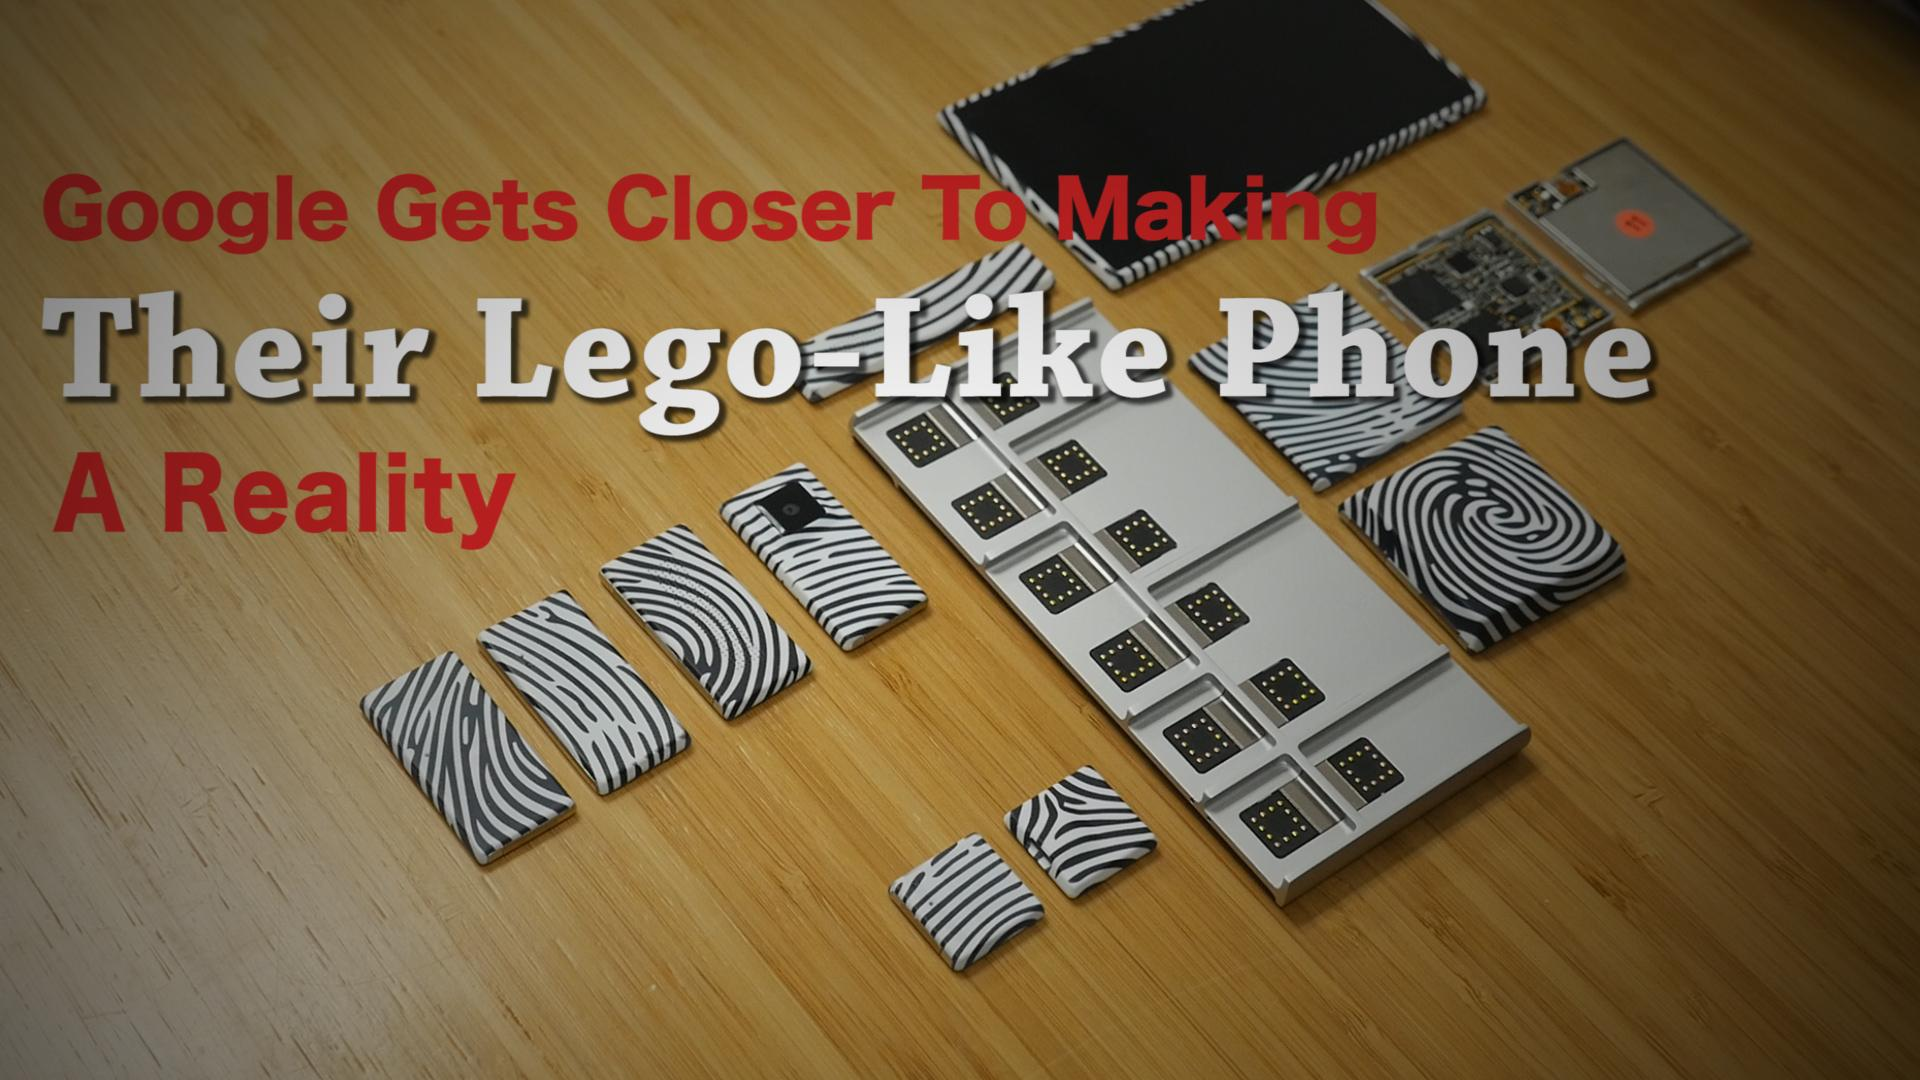 Google Gets Closer To Making Their Lego-Like Phone A Reality